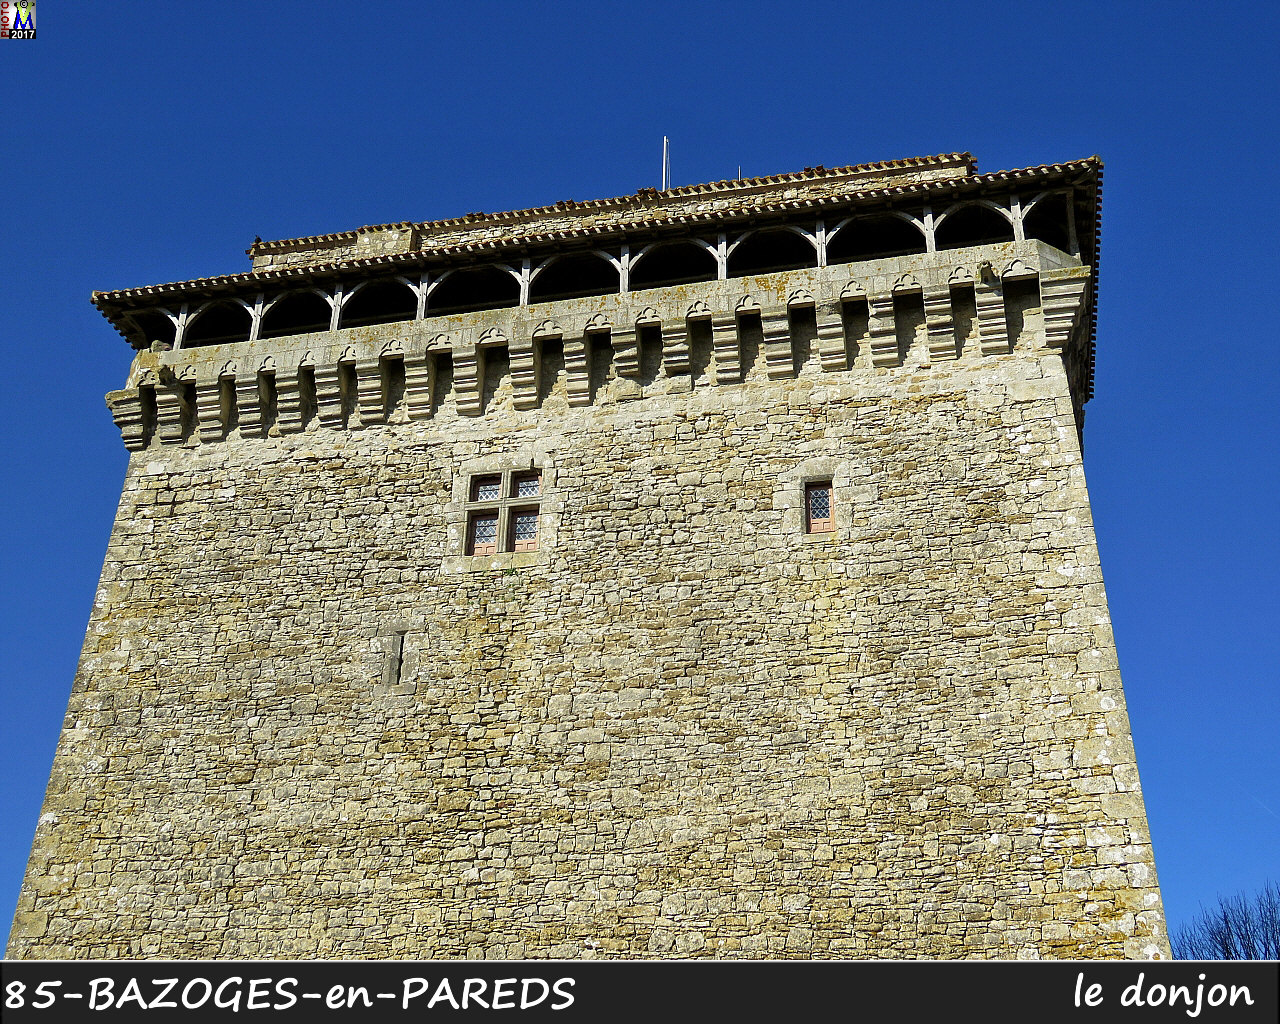 85BAZOGES-PAREDS_donjon_1004.jpg